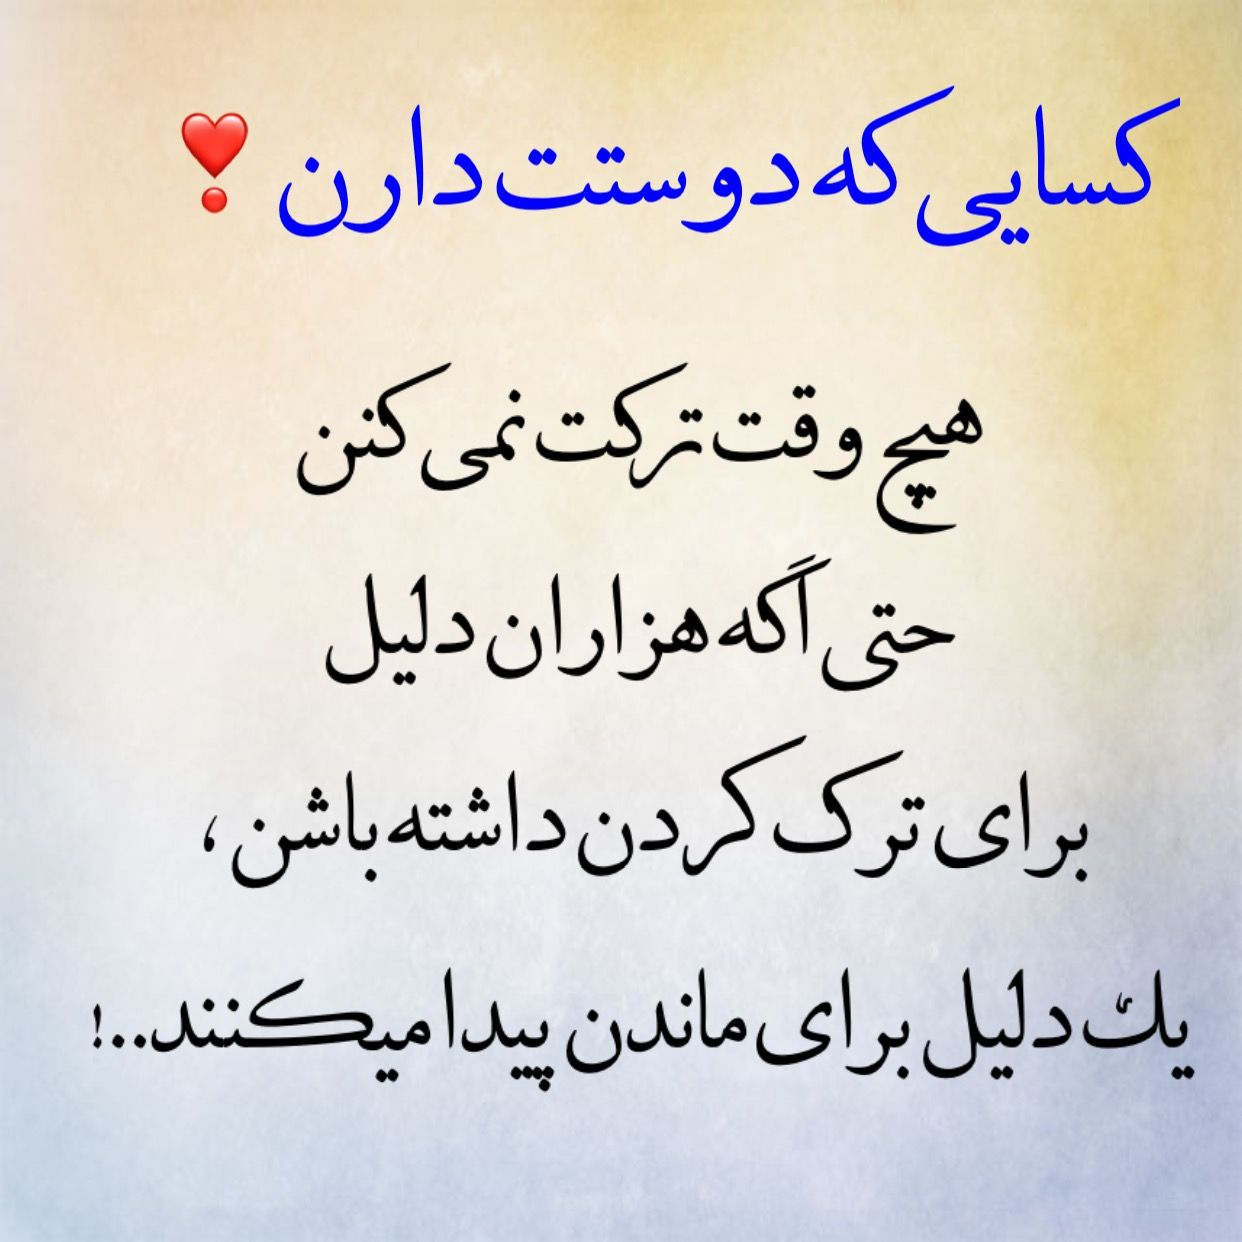 هیچ وقت Text On Photo Text Thoughts